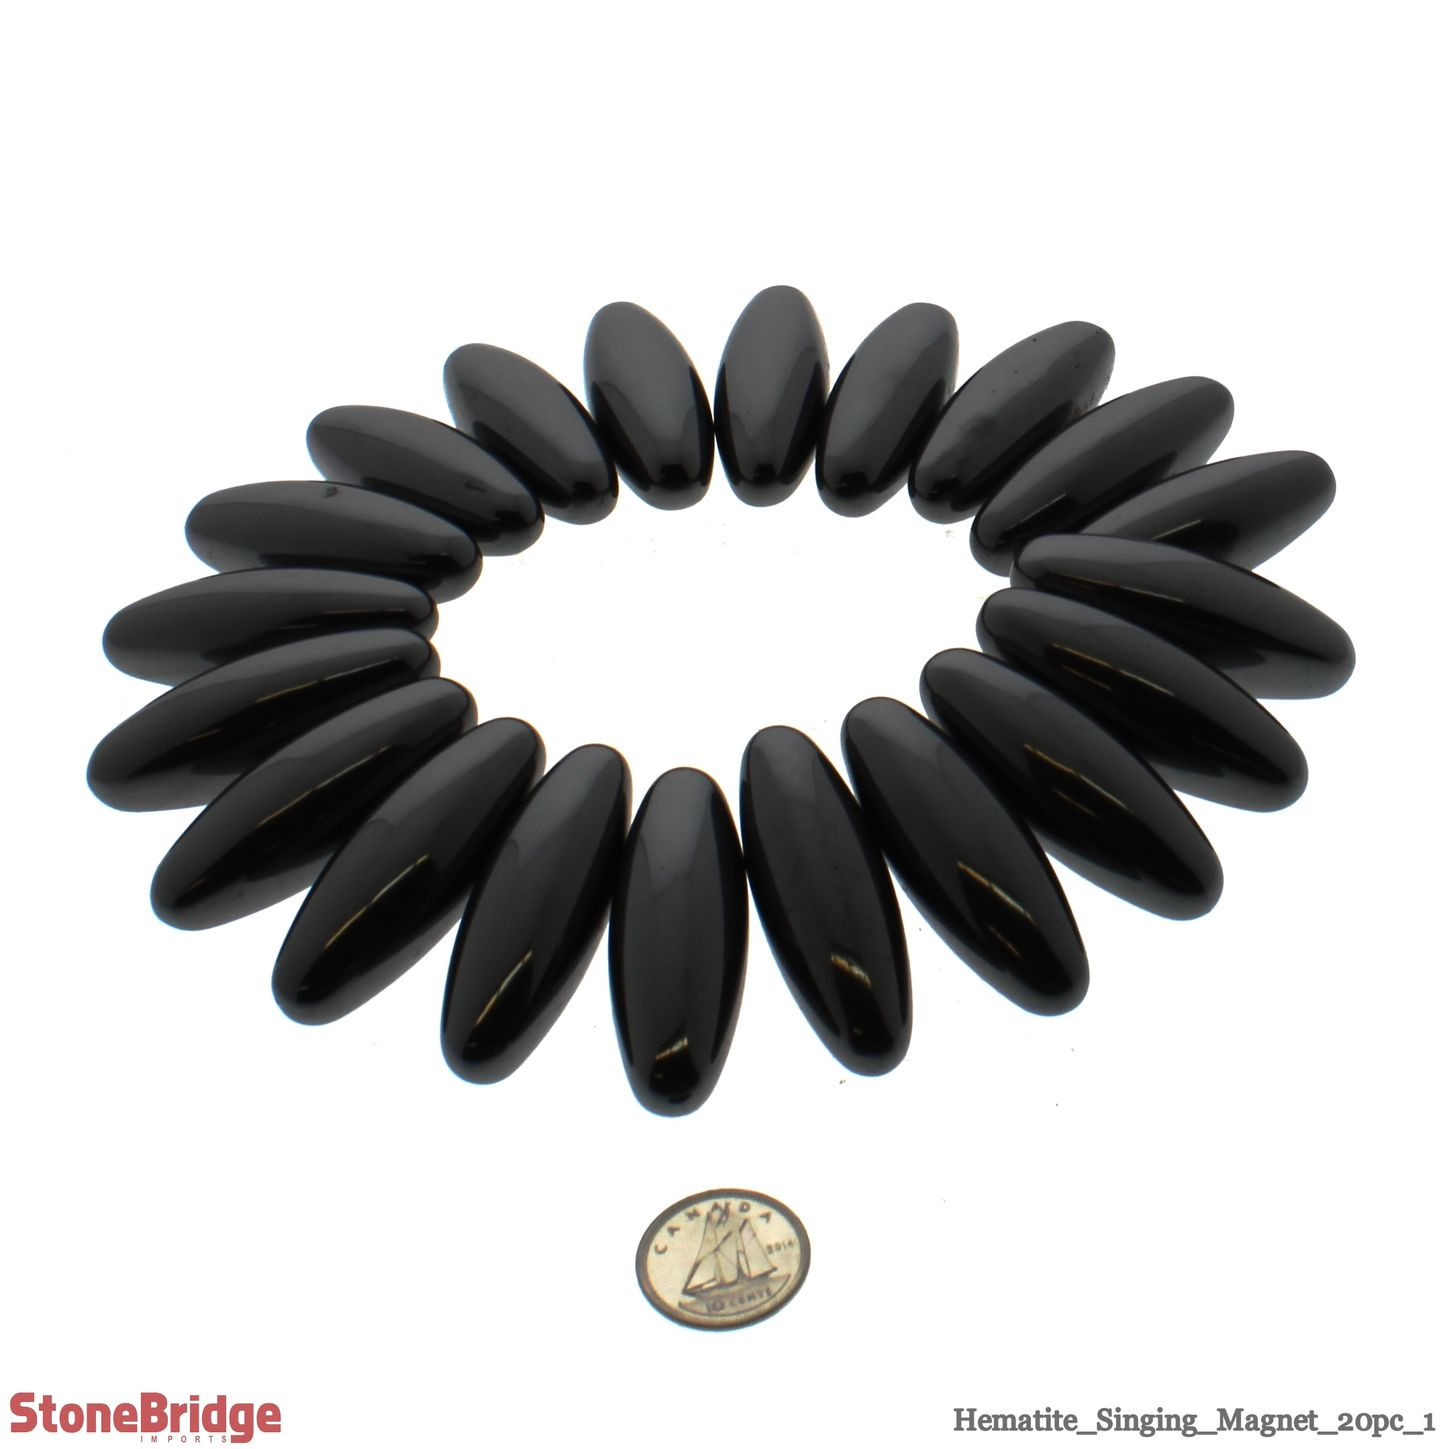 SIHEMMpk1_Hematite_Singing_Magnet_20pc_1_1.jpg